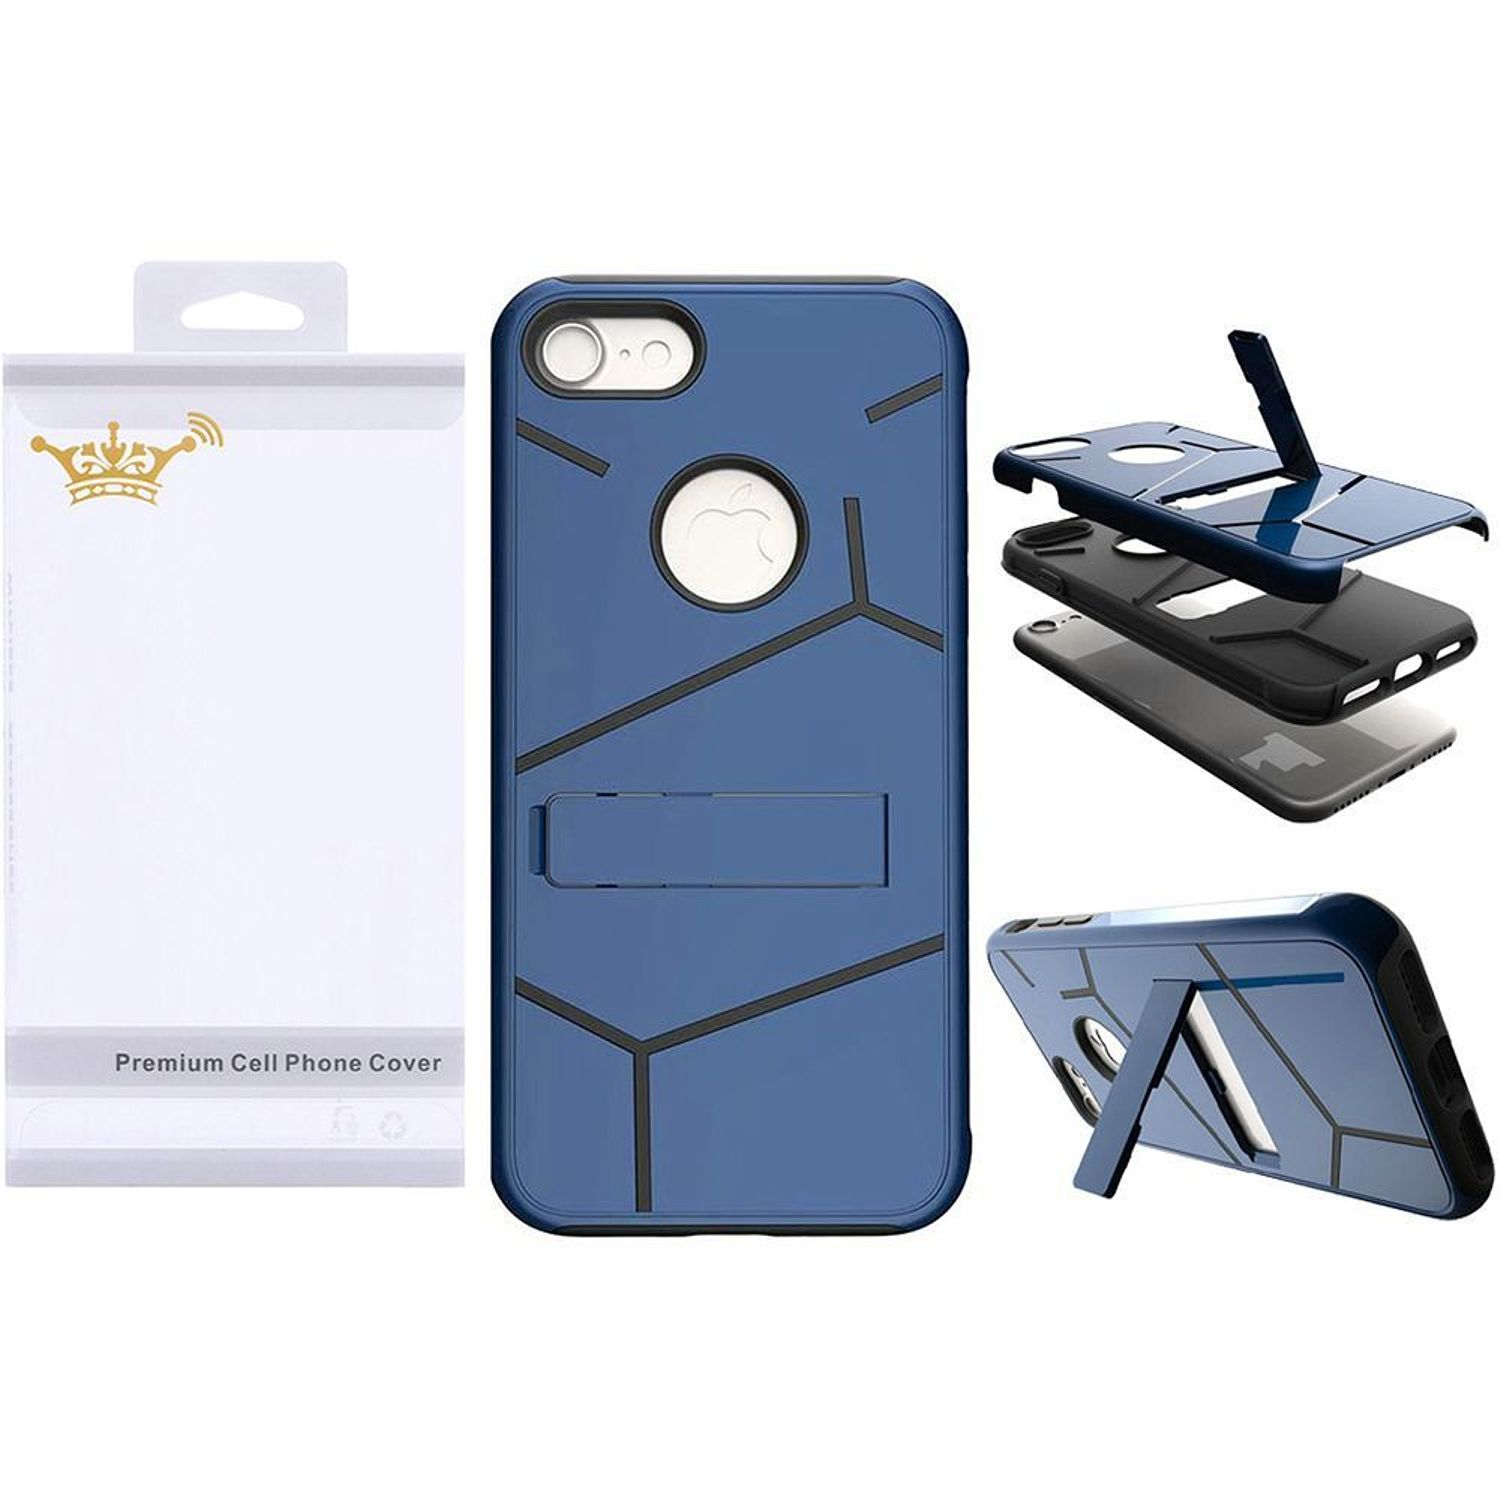 iPhone 7 Case, by Insten Dual Layer [Shock Absorbing] Hybrid Stand Hard Plastic/Soft TPU Rubber Case Cover for Apple iPhone 7, Blue/Black